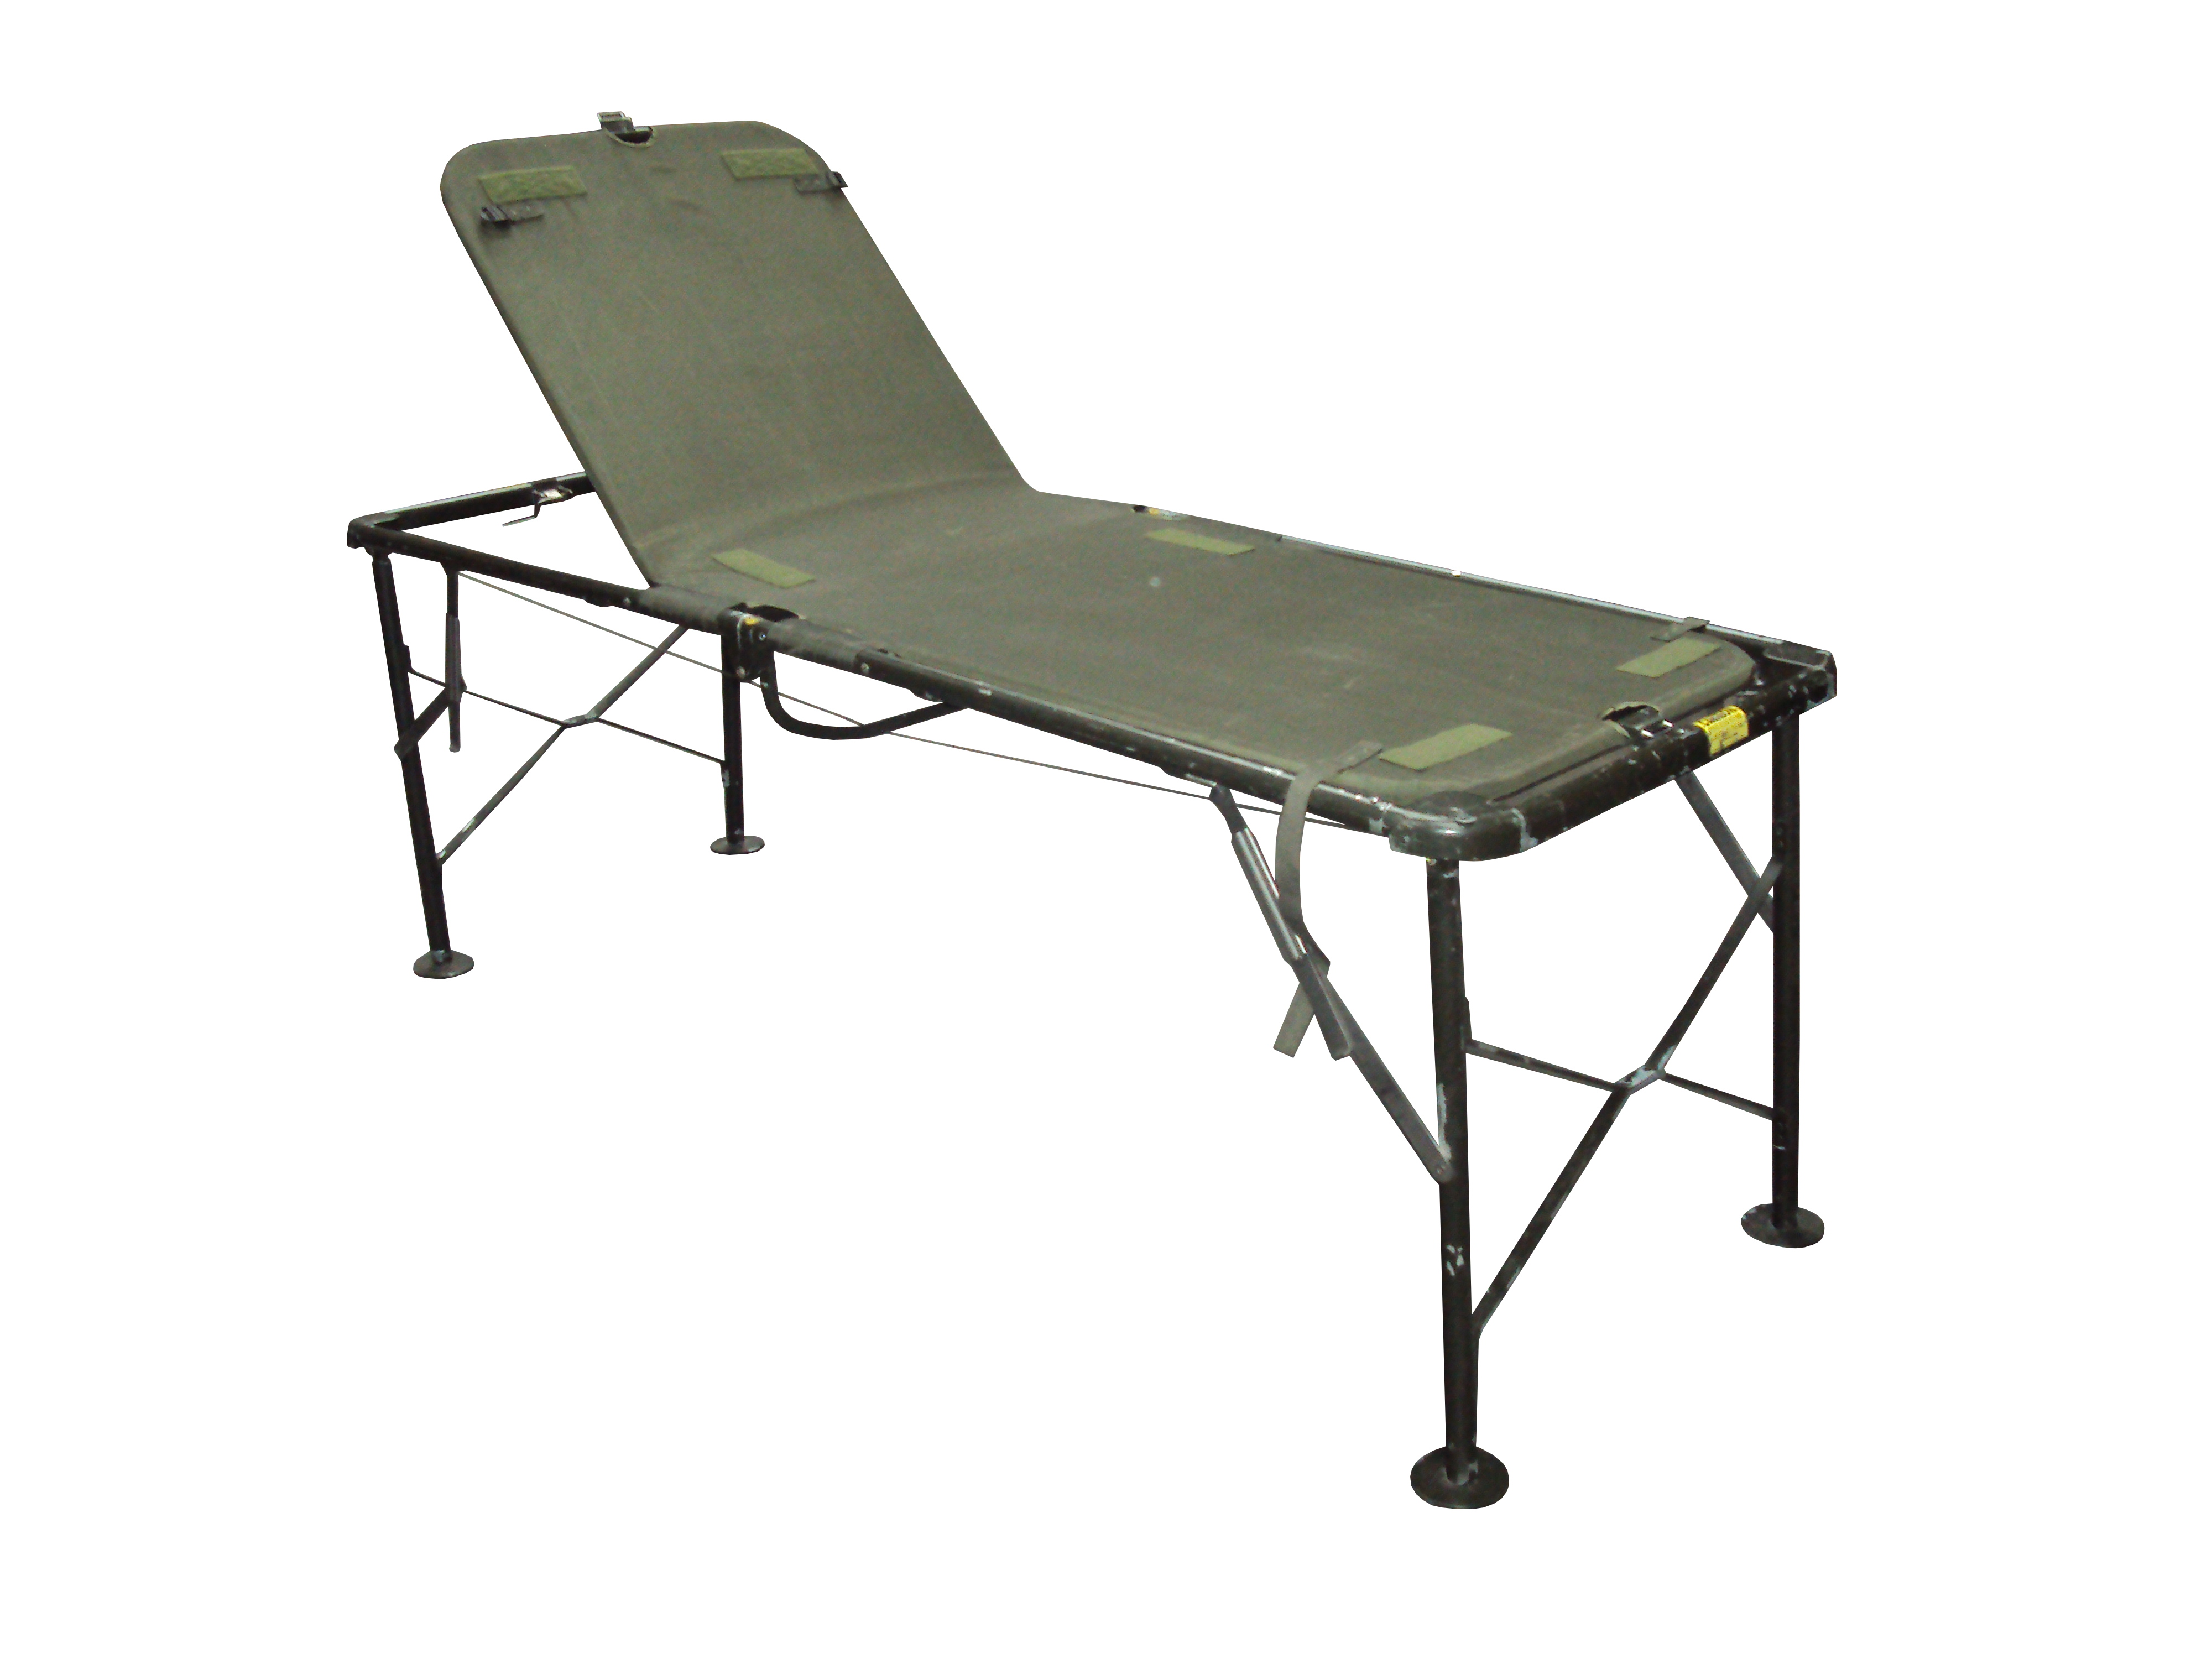 Lot 20 - Pack of 7 - Field Hospital Surgery Cot Bed - Used - Parts May be Missing